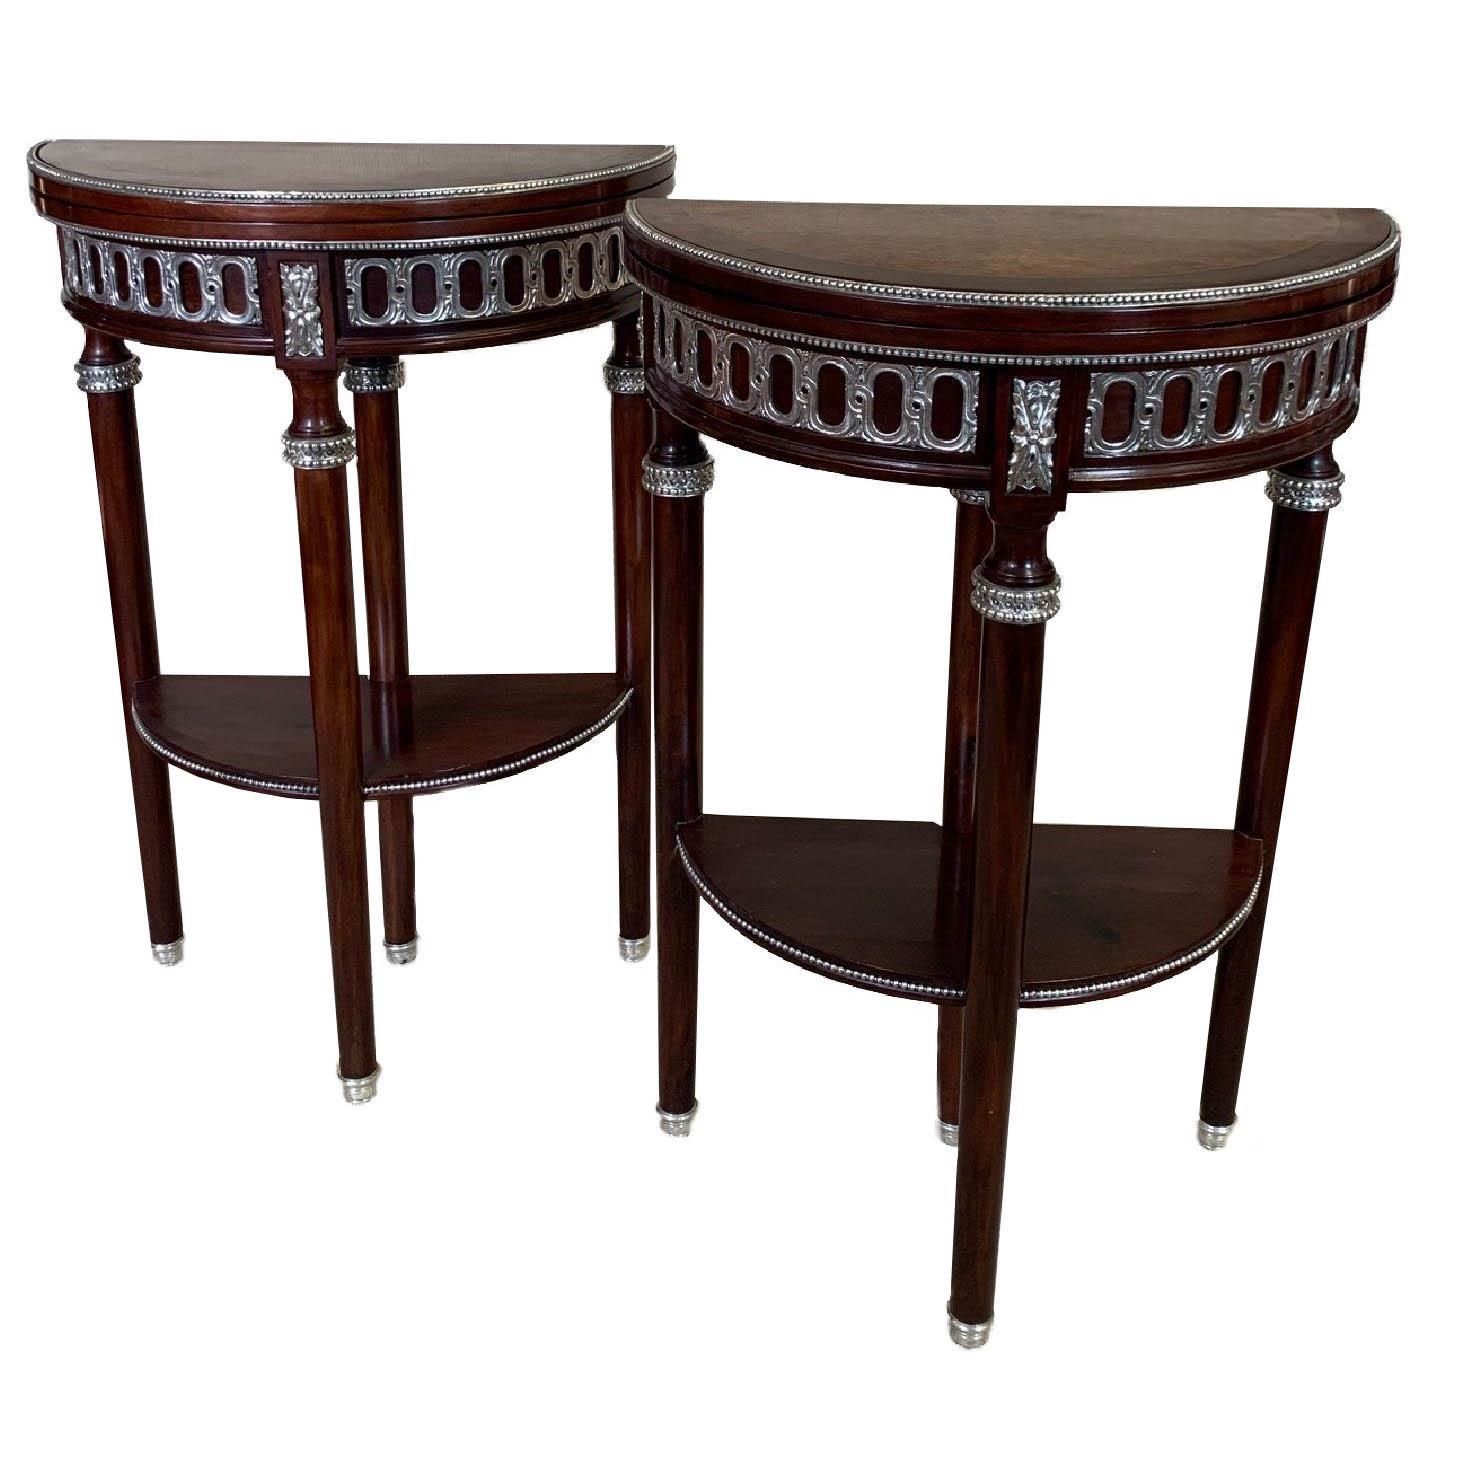 A PAIR OF EARLY 20TH CENTURY LOUIS XVI STYLE AMBOYNA AND MAHOGANY DEMILUNE CARD TABLES The hinge